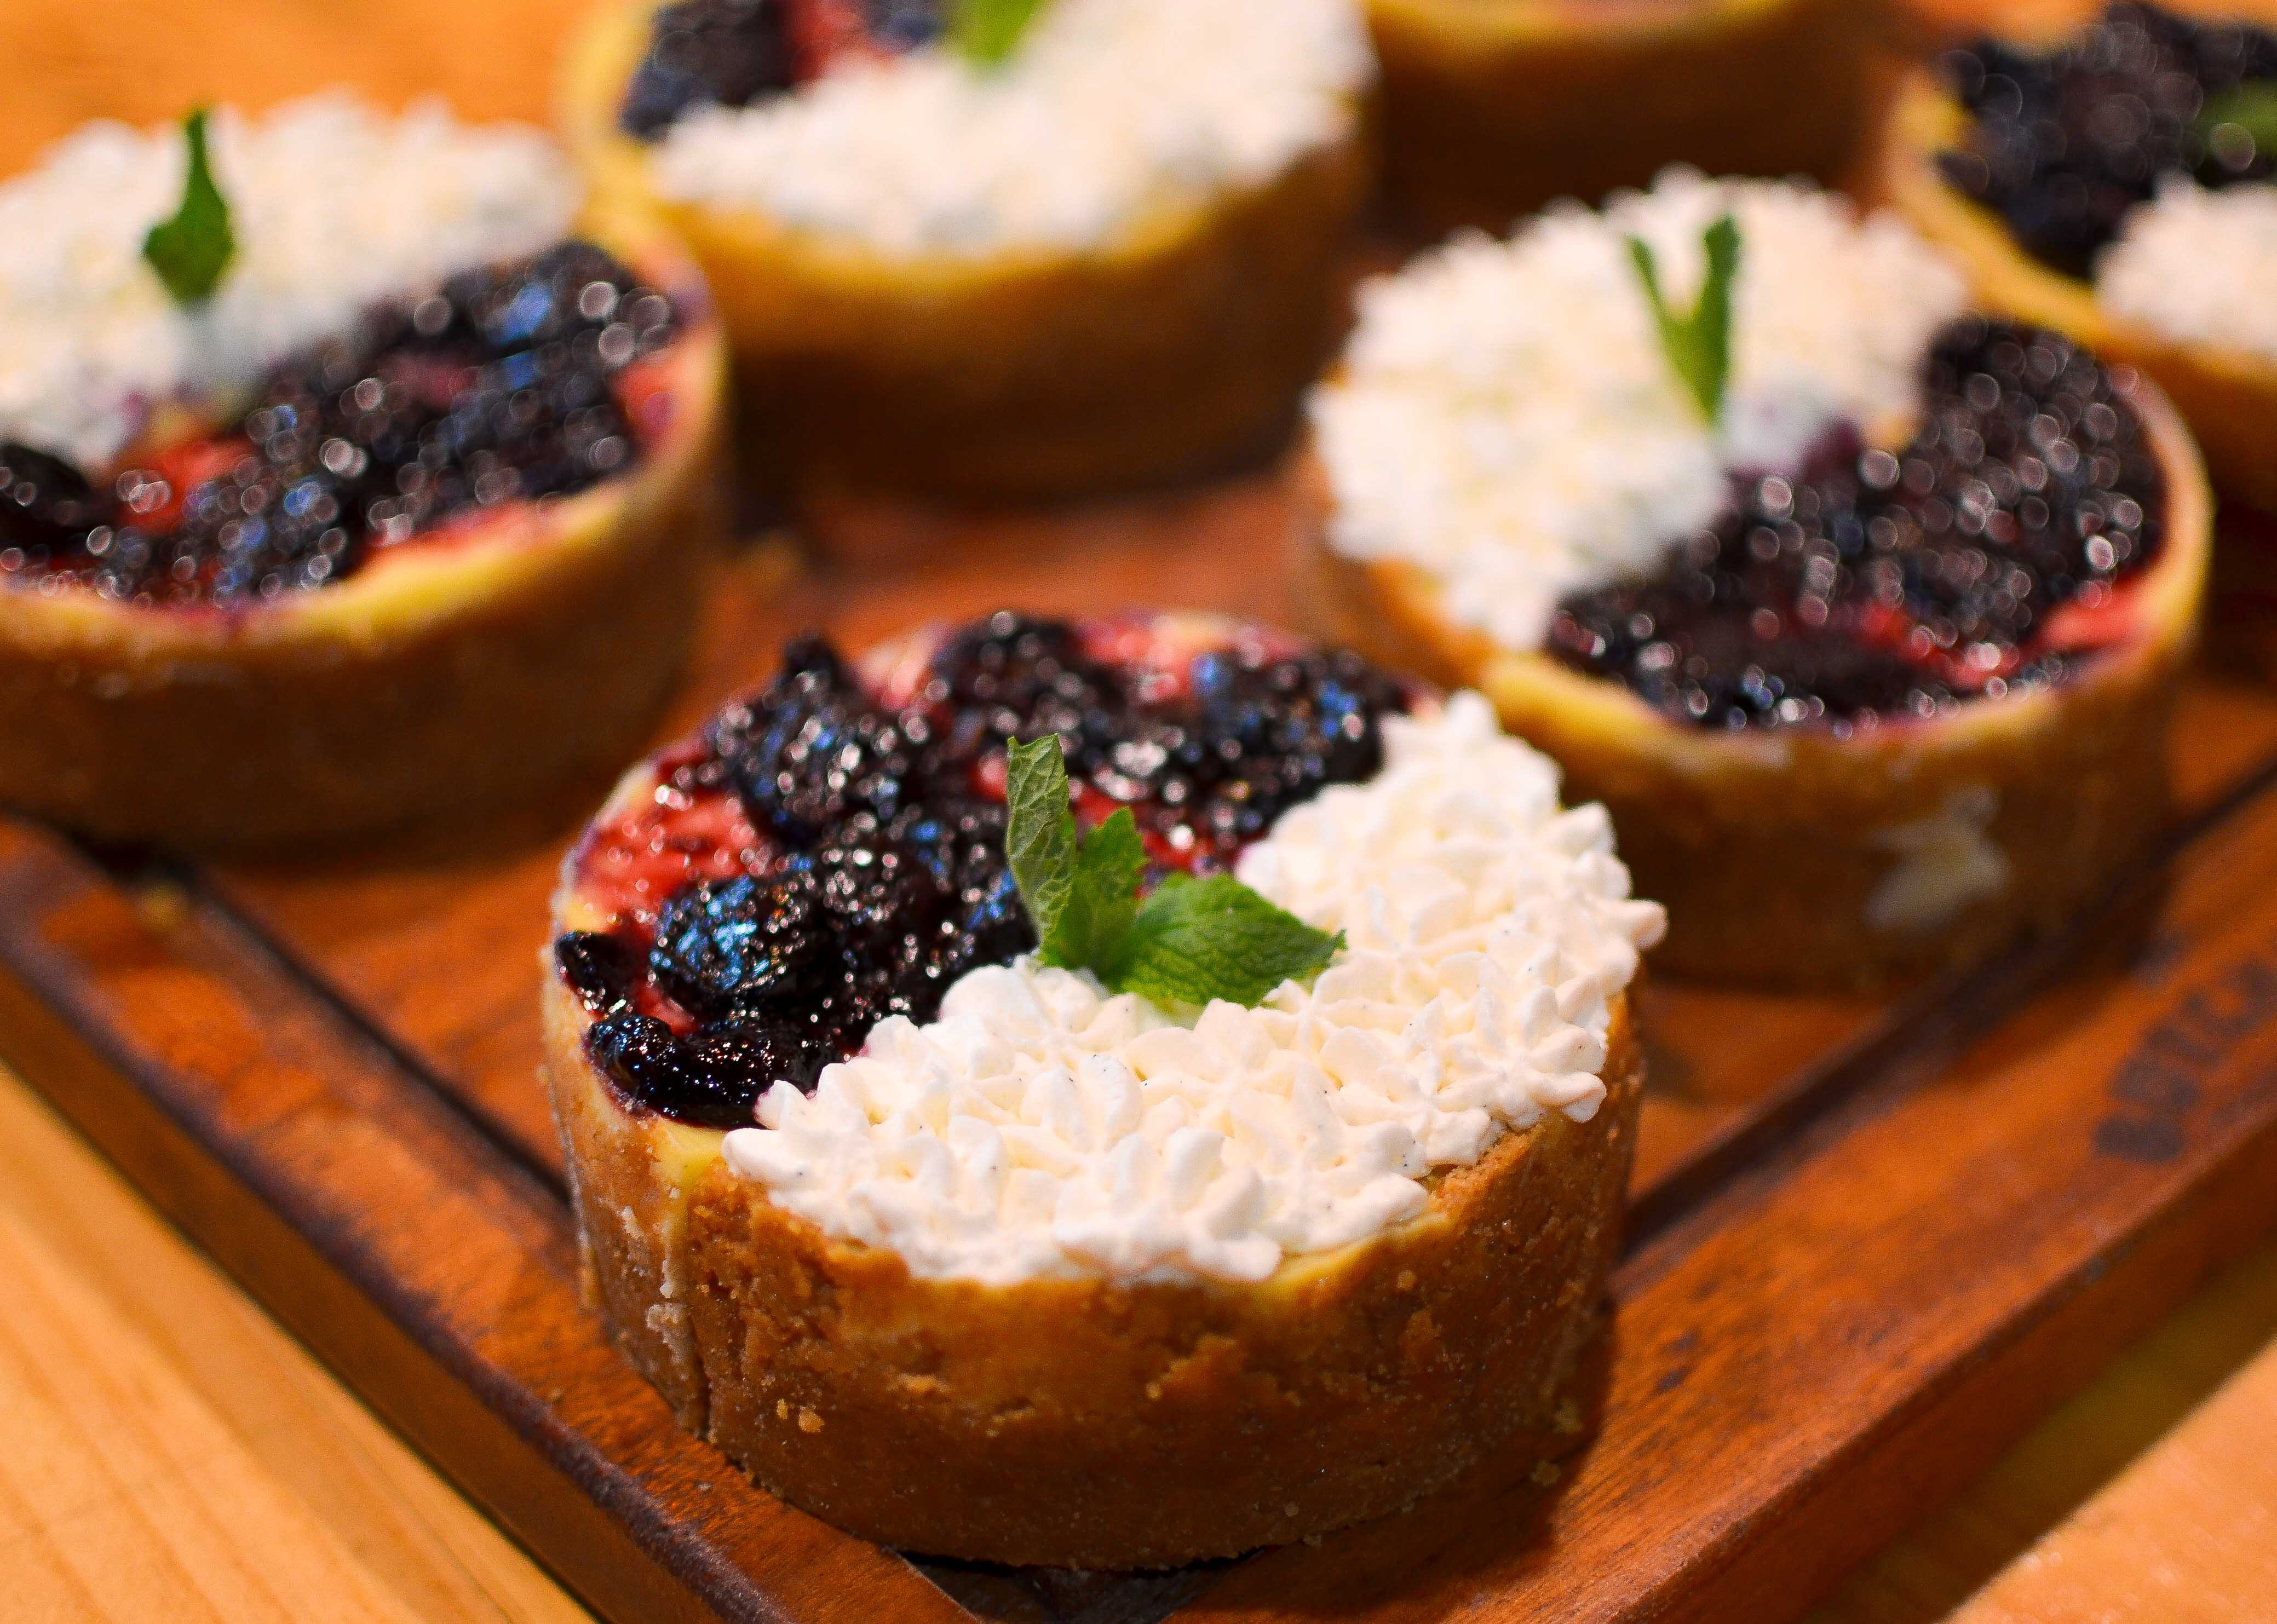 Blueberry Cheesecakes and  Key Lime Pies